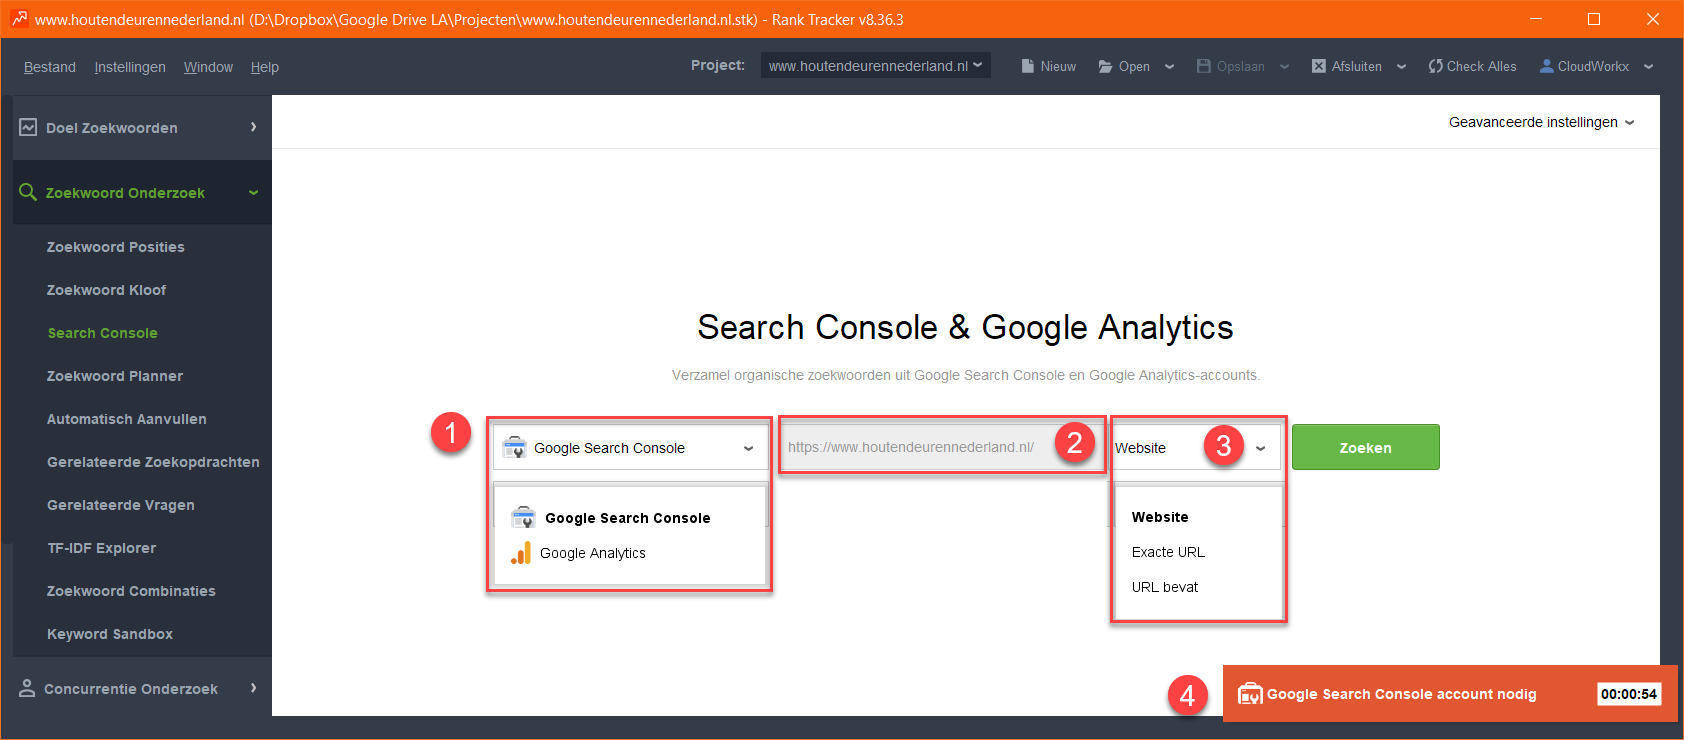 Search Console & Google Analytics